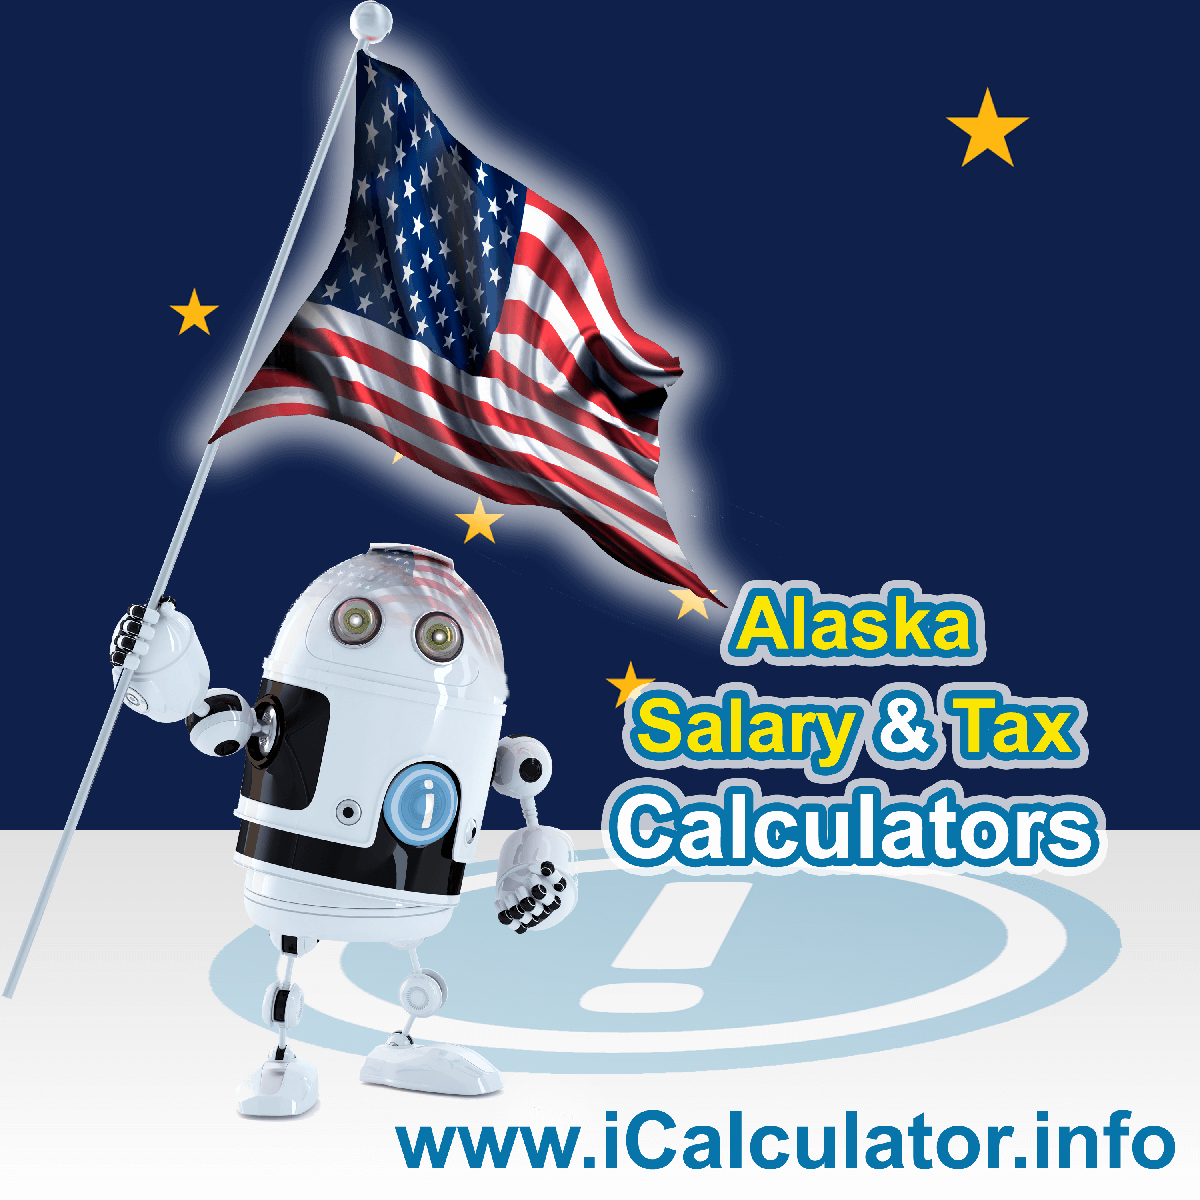 Alaska Salary Calculator 2019 | iCalculator | The Alaska Salary Calculator allows you to quickly calculate your salary after tax including Alaska State Tax, Federal State Tax, Medicare Deductions, Social Security, Capital Gains and other income tax and salary deductions complete with supporting Alaska state tax tables